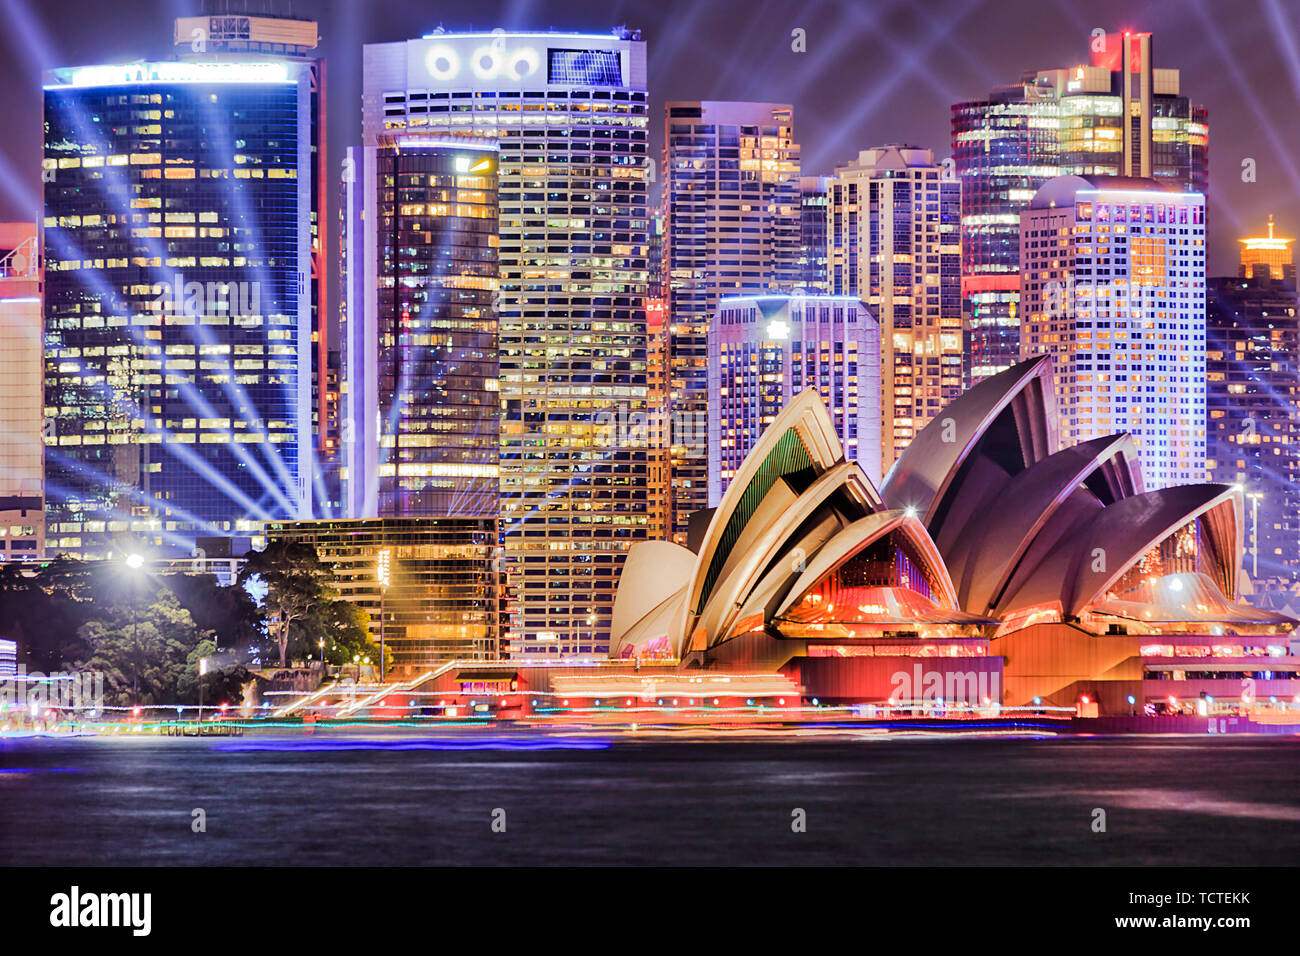 Facades of High-rise office towers of Sydney city CBD on waterfront of Sydney harbour illuminated by blue laser beams of Vivid Sydney light show. - Stock Image